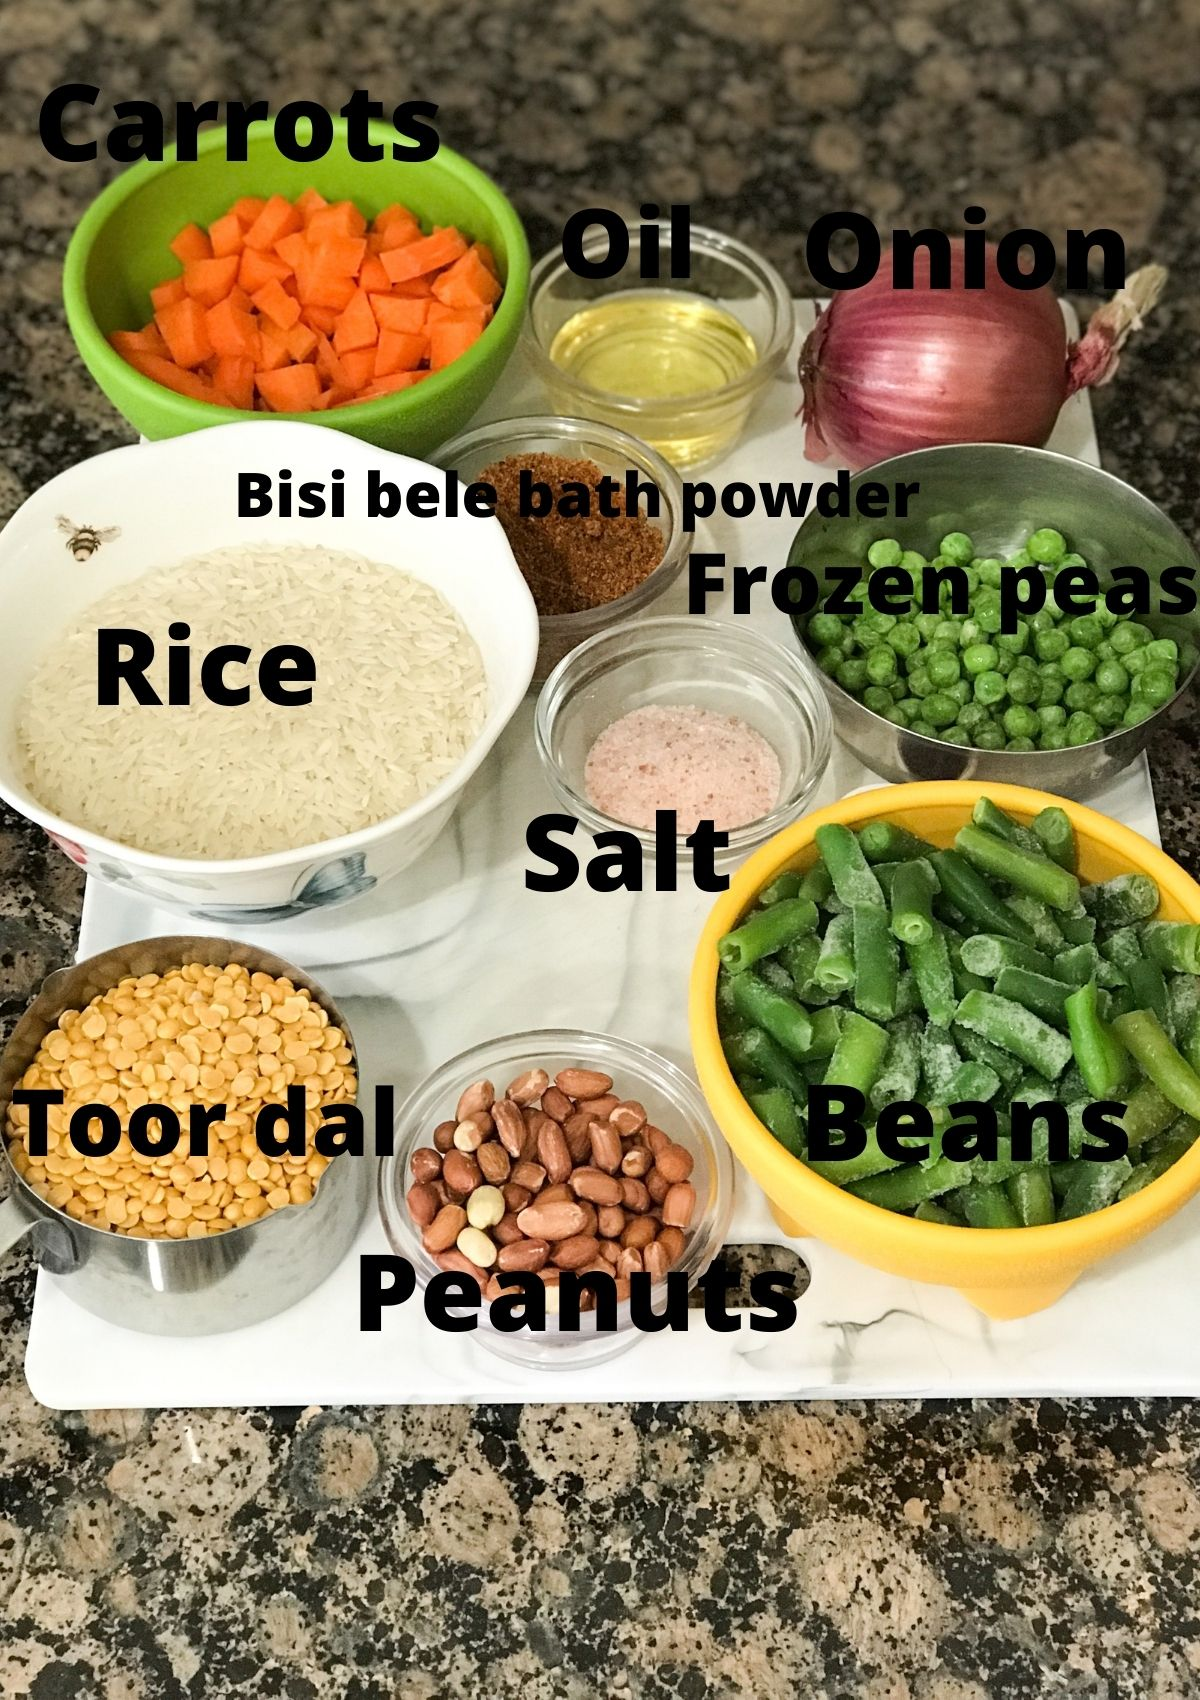 All the ingredients for bisi bele bath are placed on the counter including rice, dal, vegetables and oil